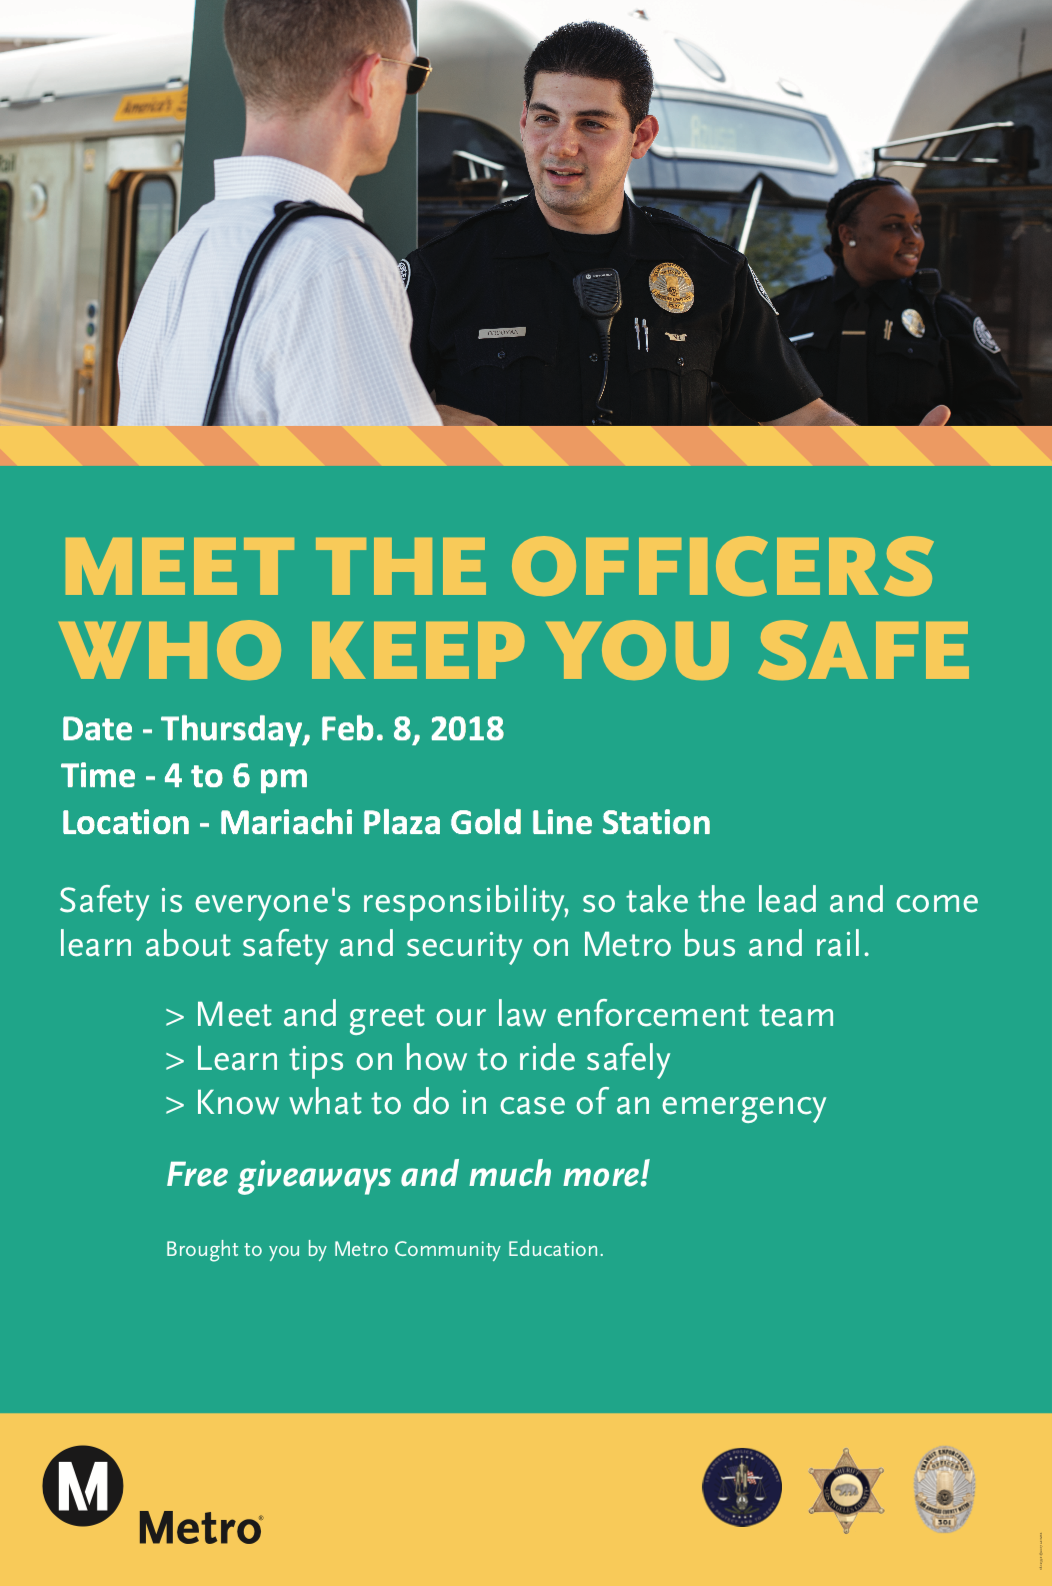 Metro To Host Law Enforcement Meet And Greet At Mariachi Plaza On